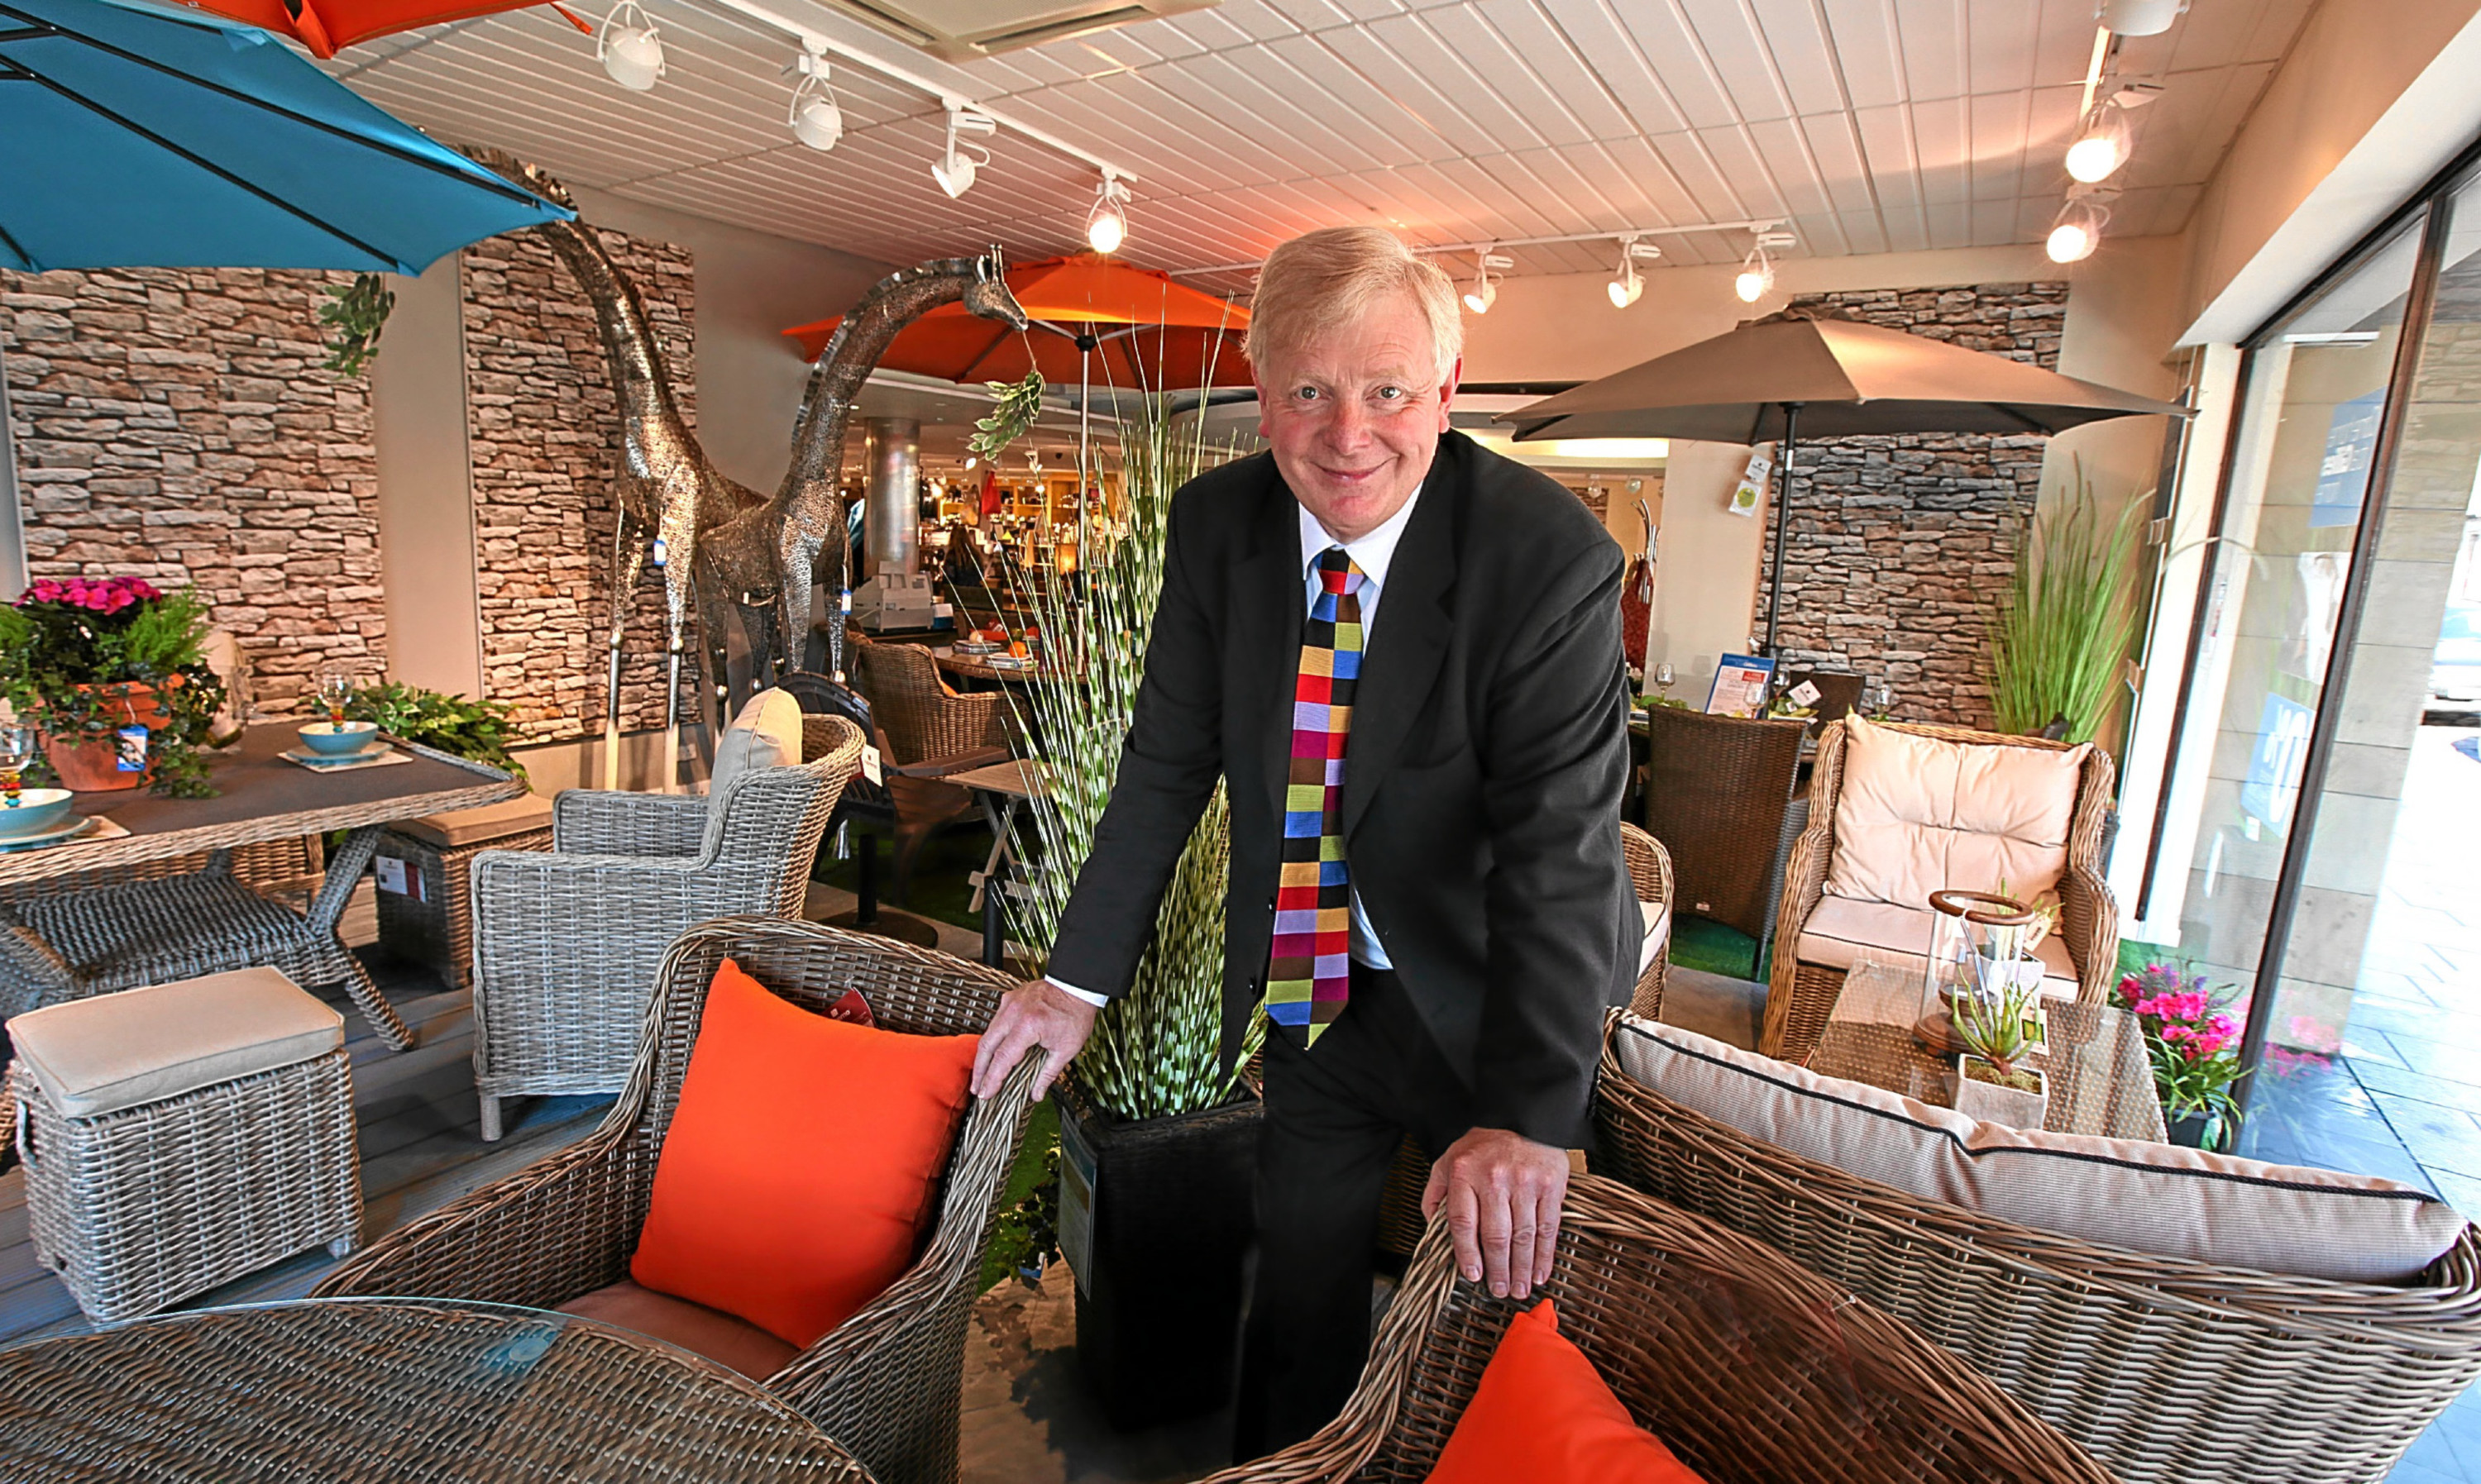 Ian Philp in the garden furnishings section at Gillies of Broughty Ferry